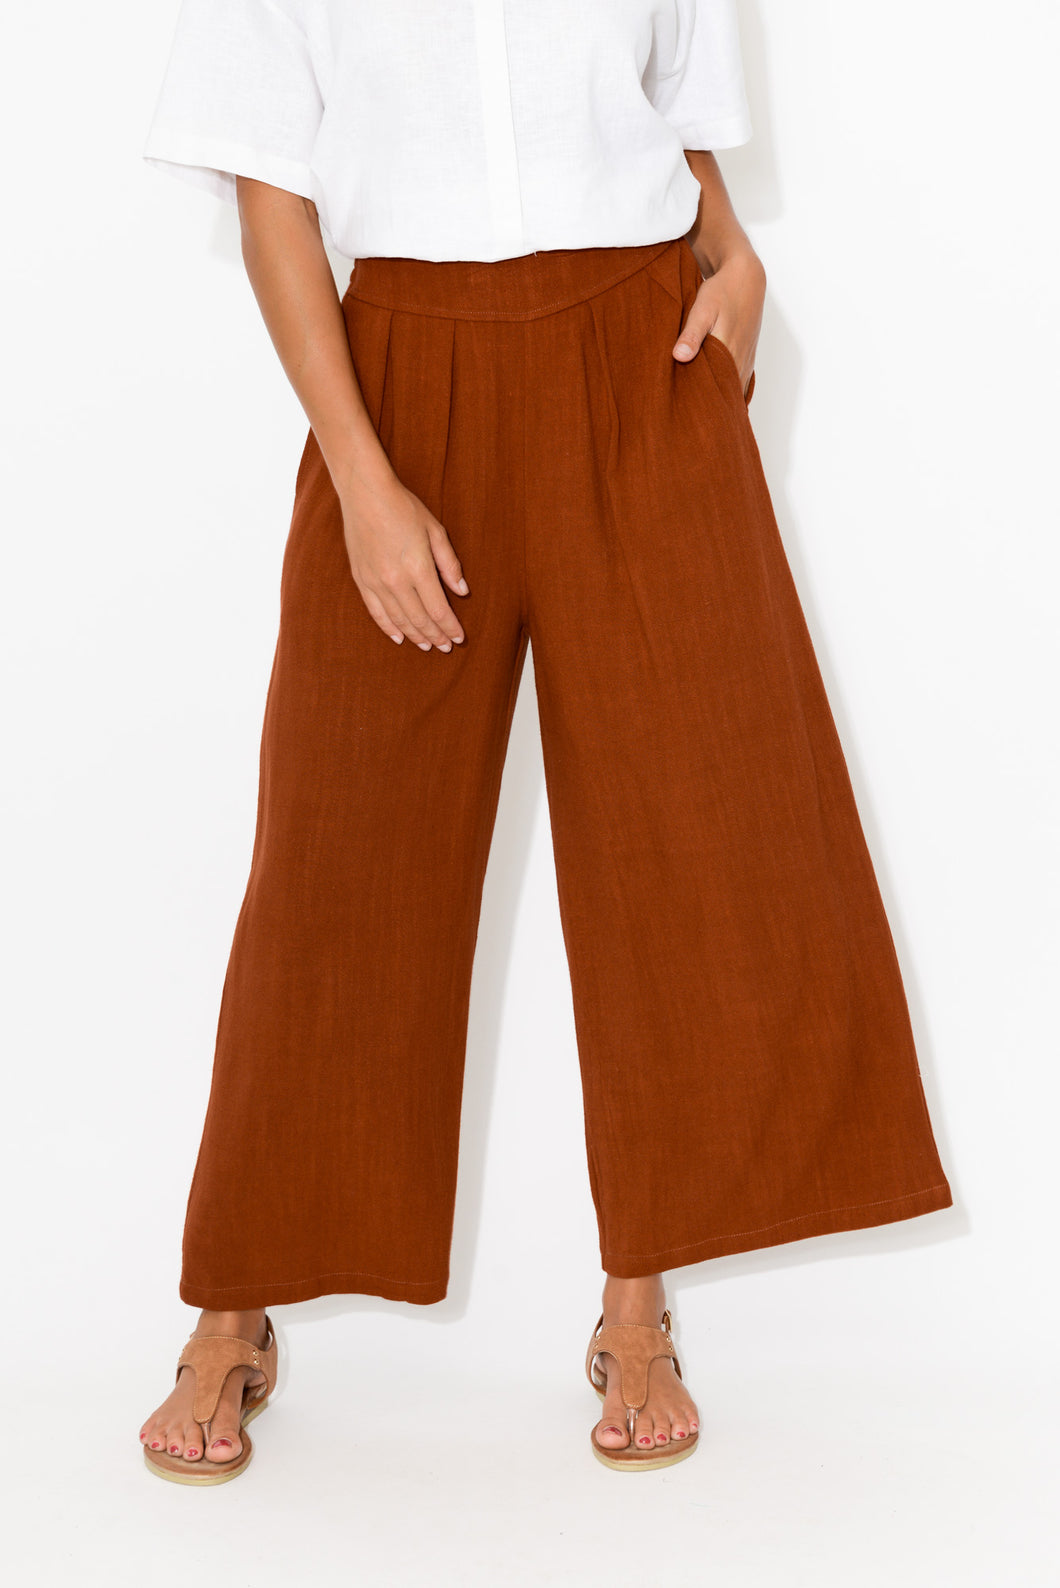 Resort Rust Wide Leg Pant